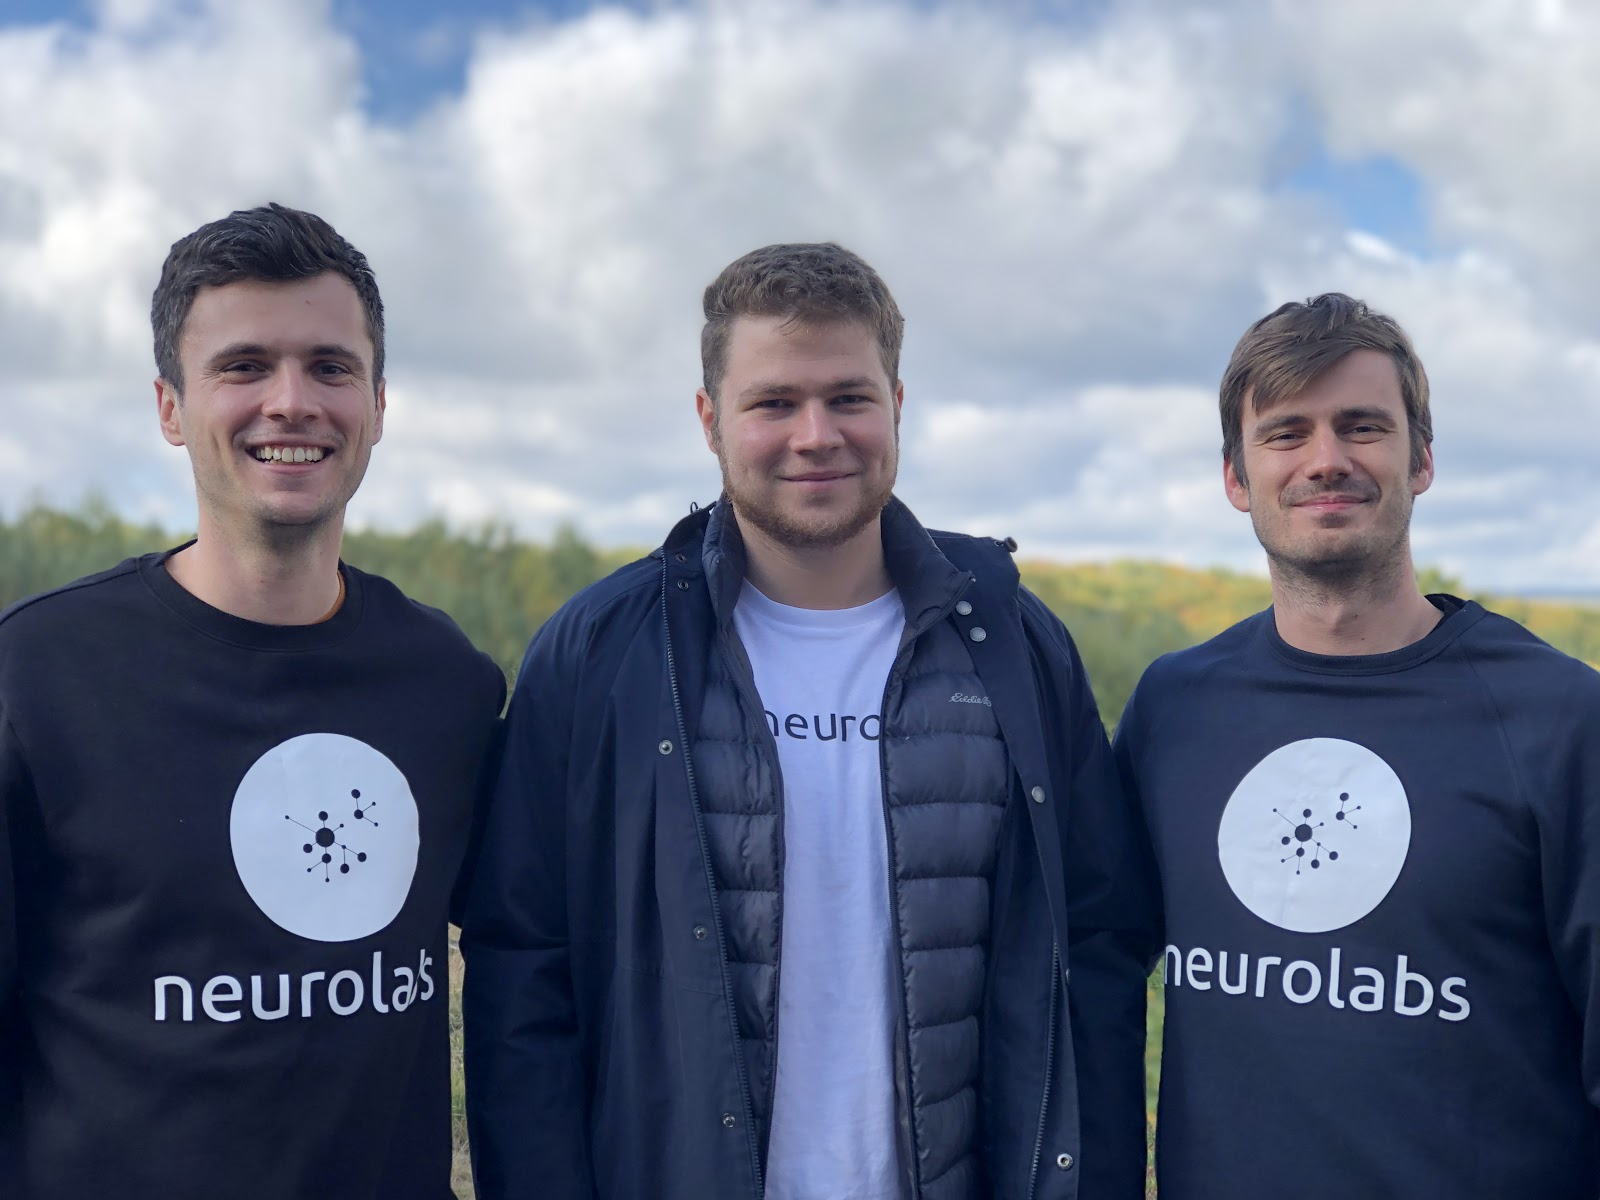 Neurolabs Founders Posing Together